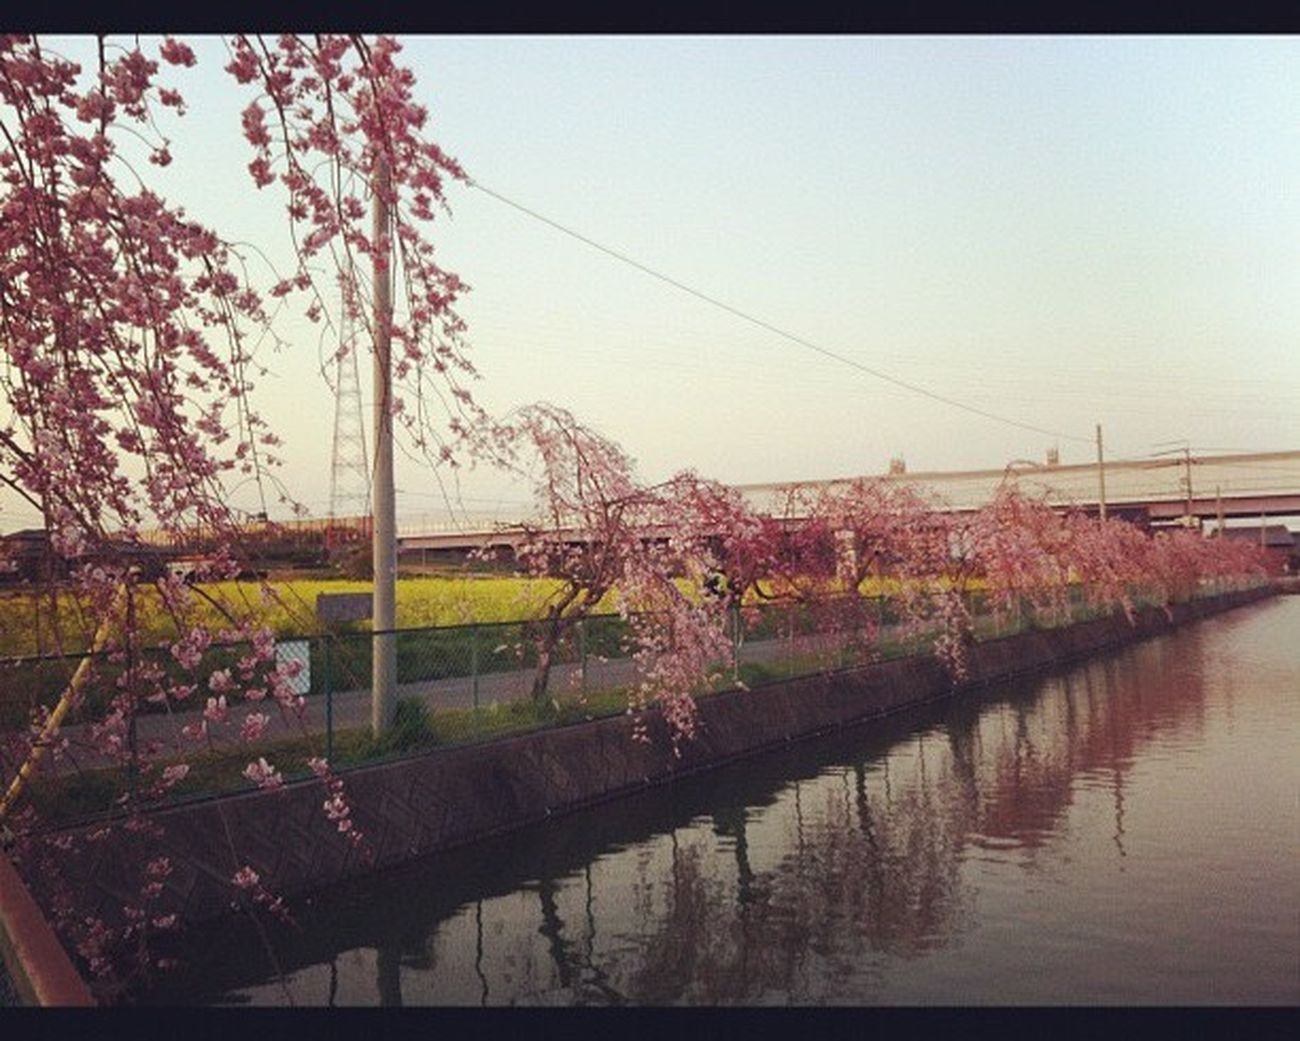 Nature 桜 Japan Cherry Blossoms 菜の花